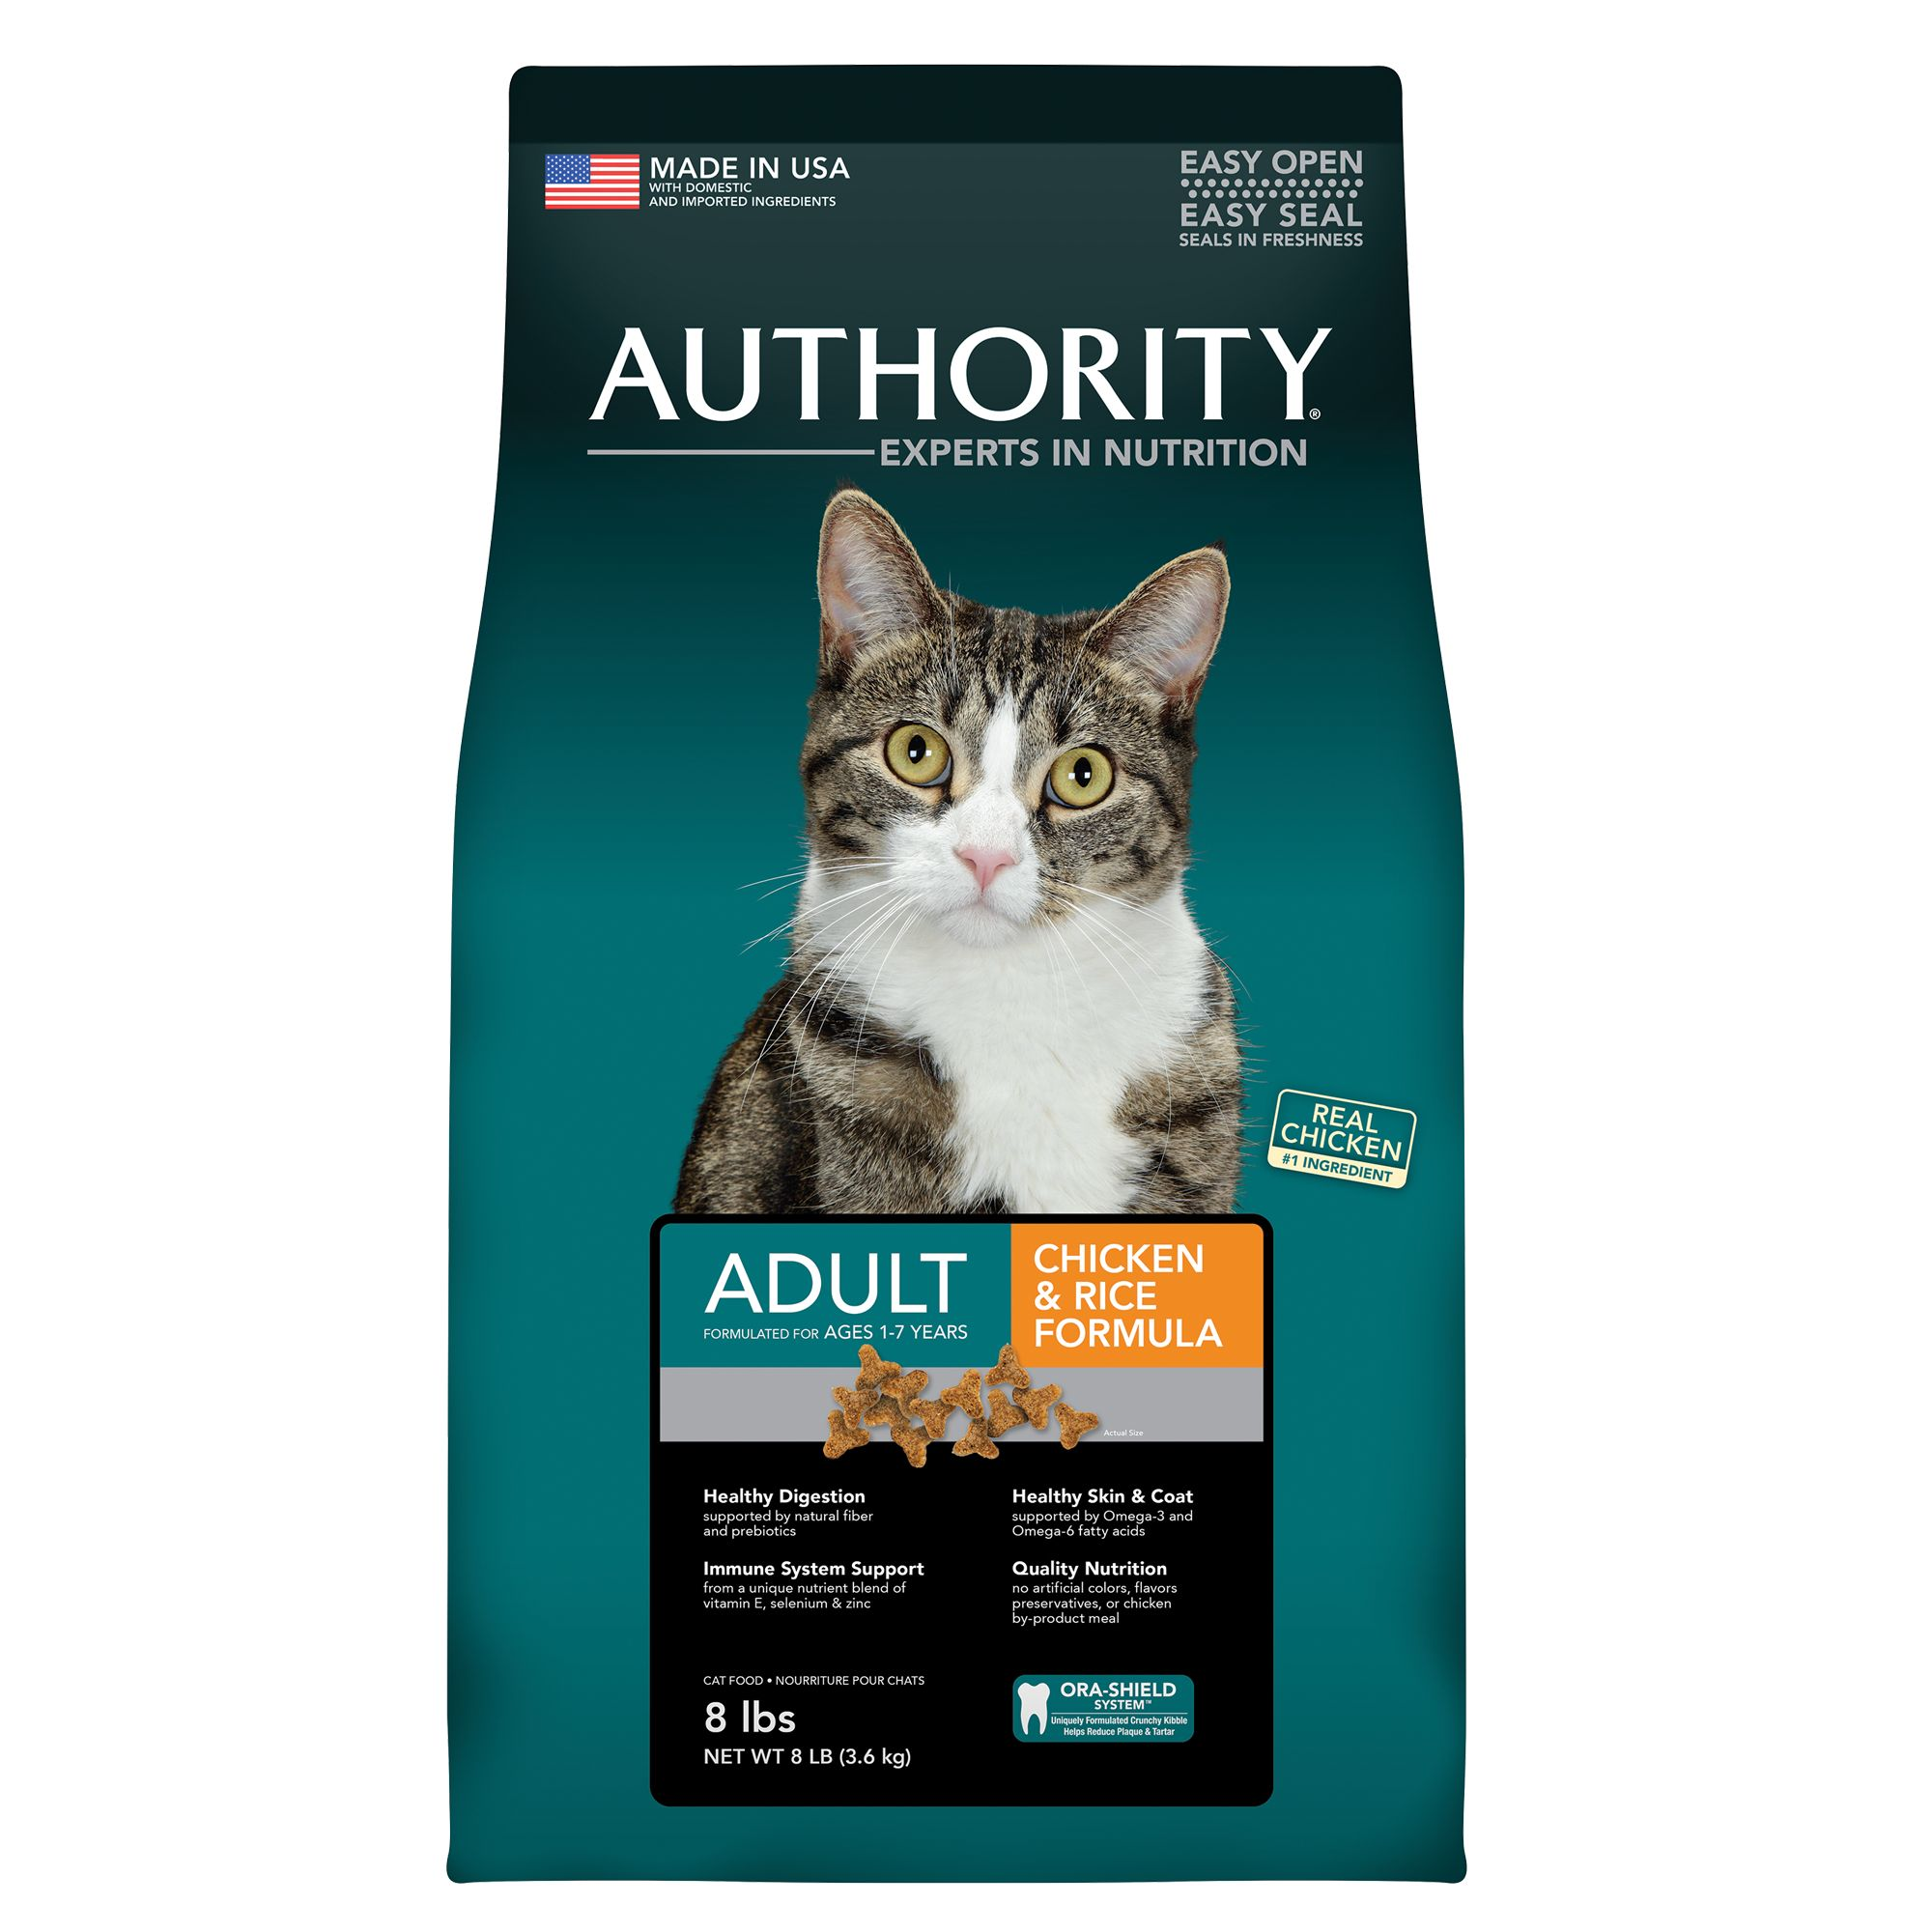 Authority Adult Cat Food Chicken And Rice Size 8 Lb